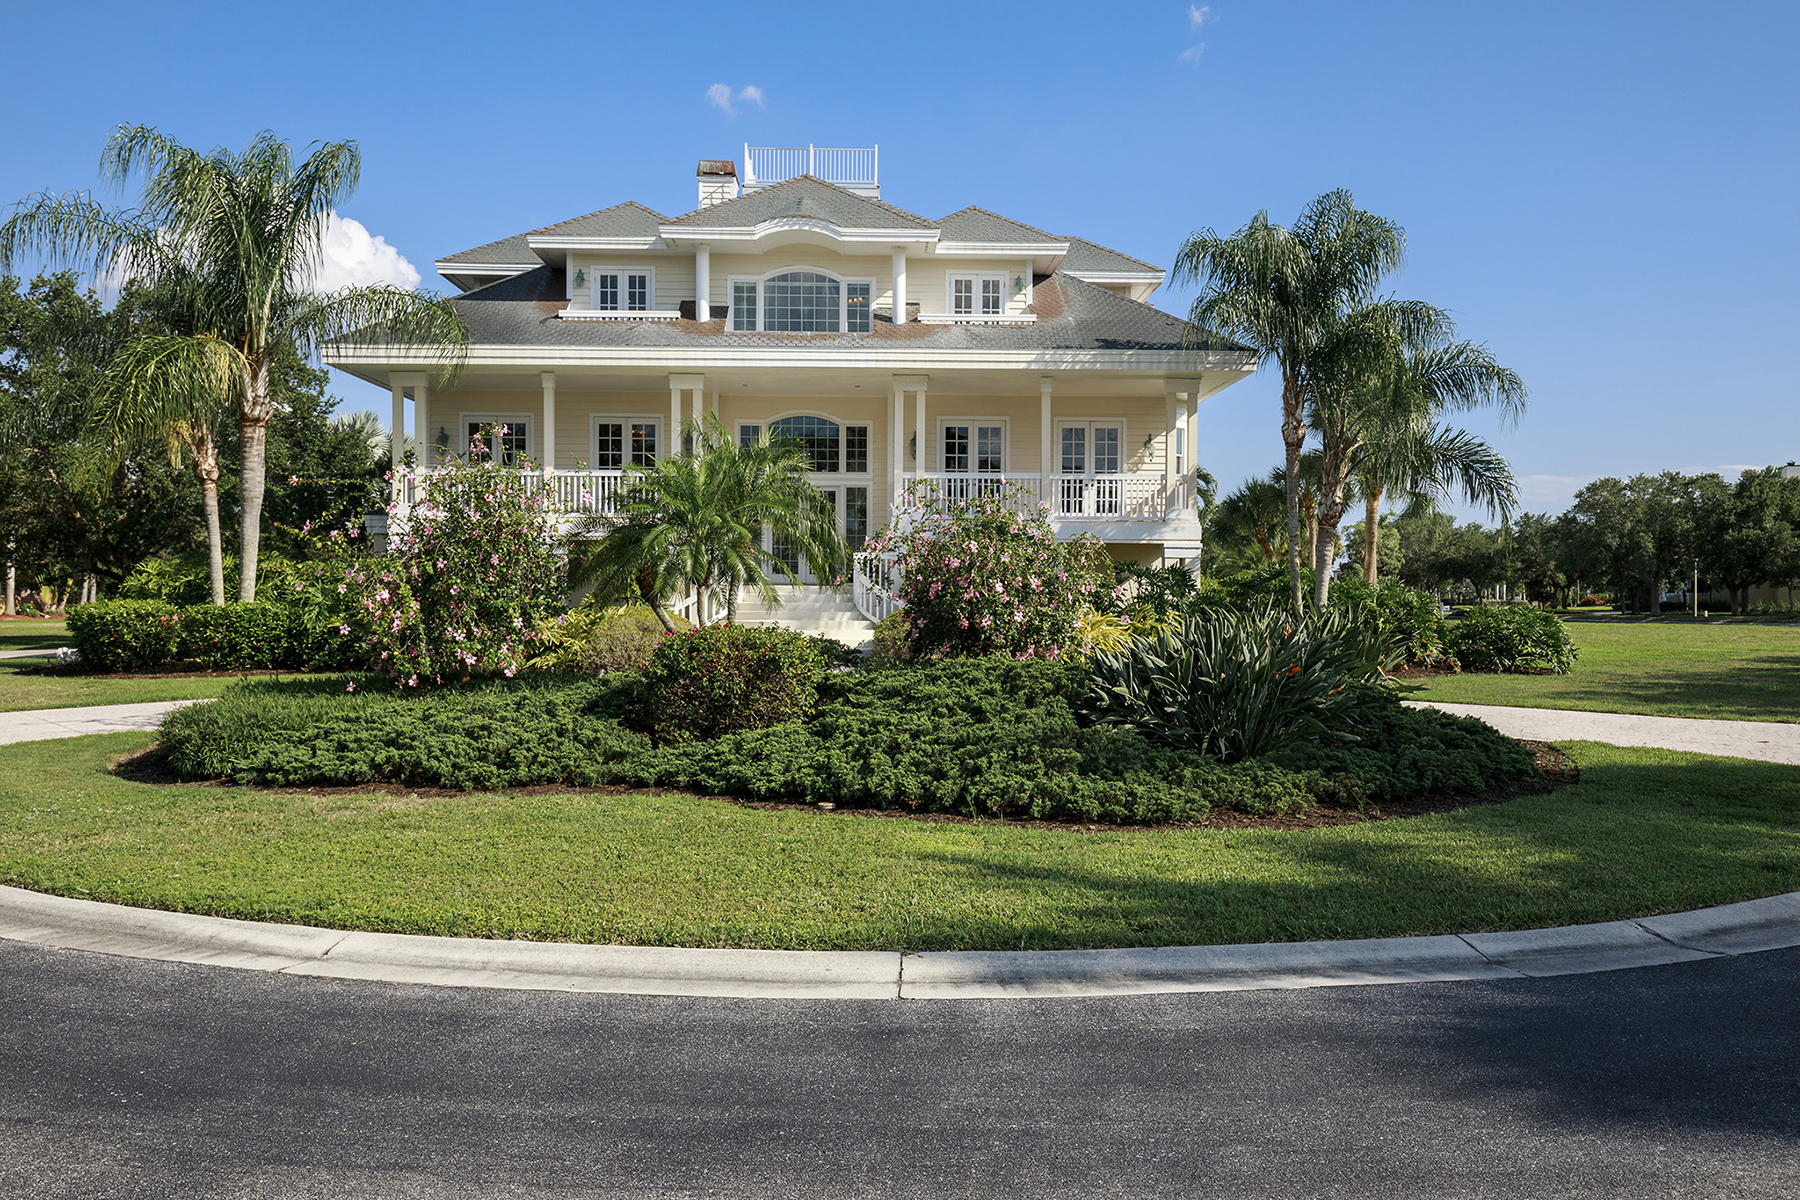 Single Family Homes のために 売買 アット PORT CHARLOTTE 4490 Grassy Point Blvd, Port Charlotte, フロリダ 33952 アメリカ